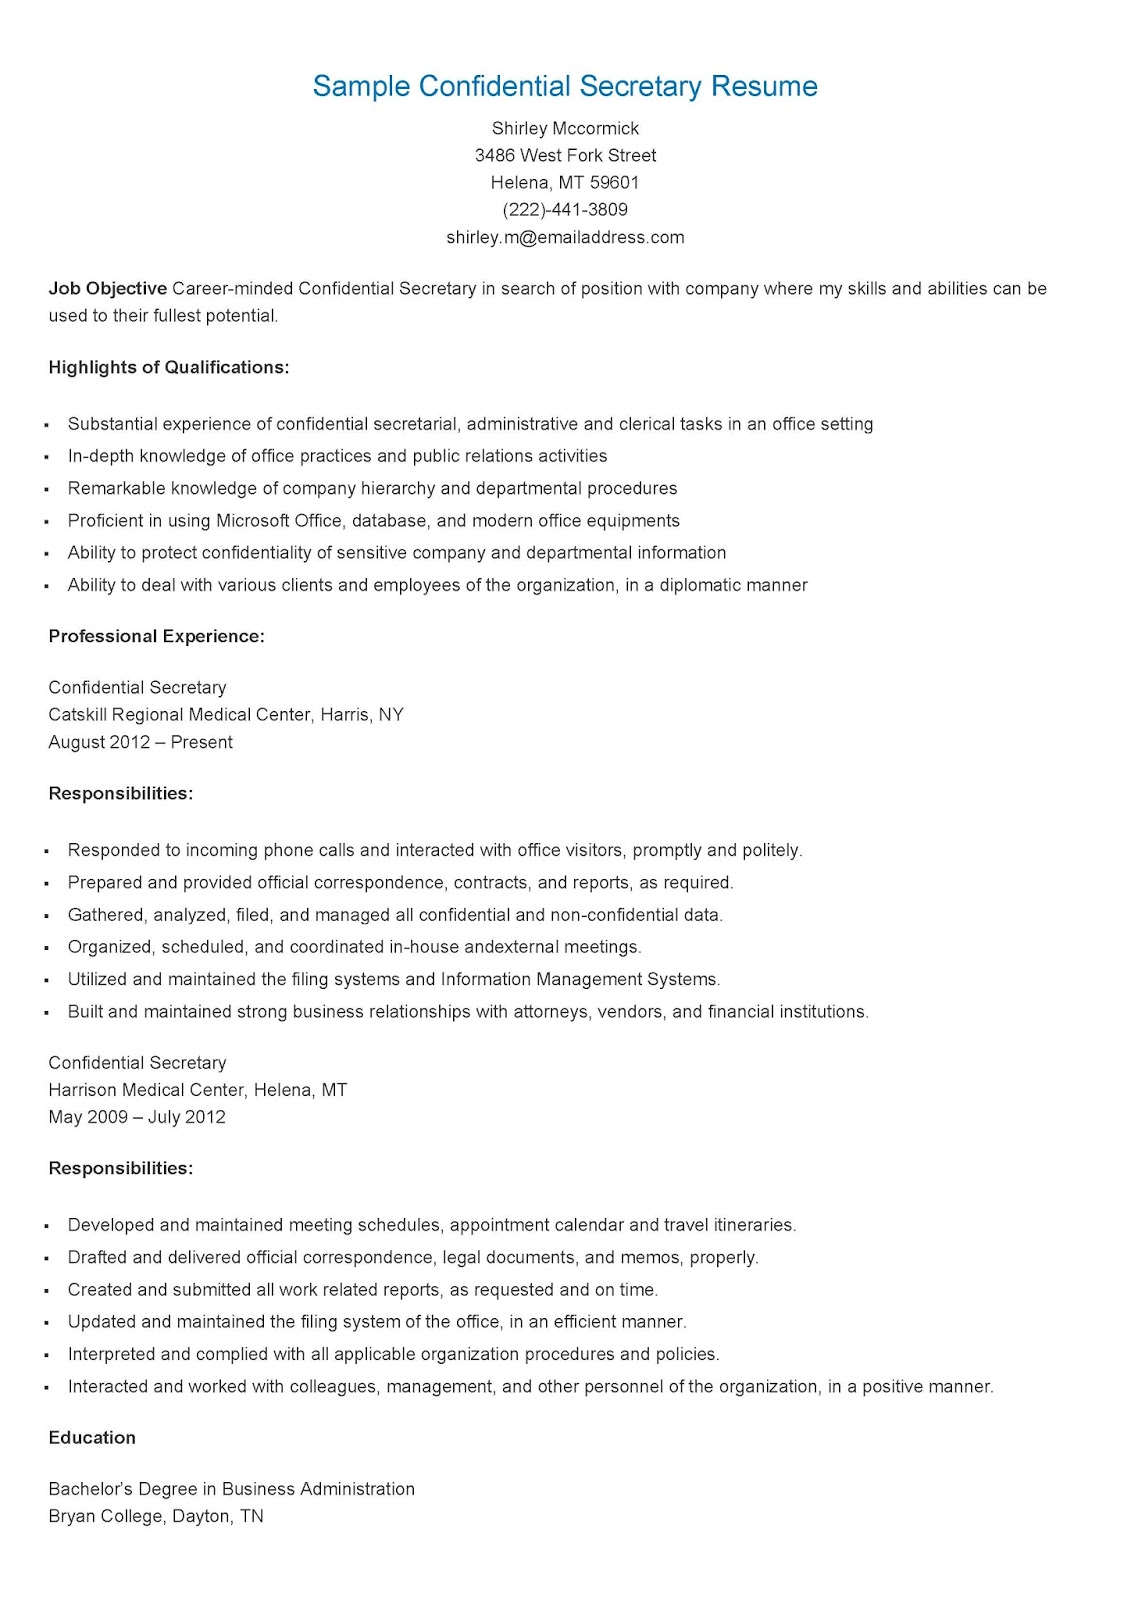 Secretary Skills Resume Resume Samples Confidential Secretary Resume Sample